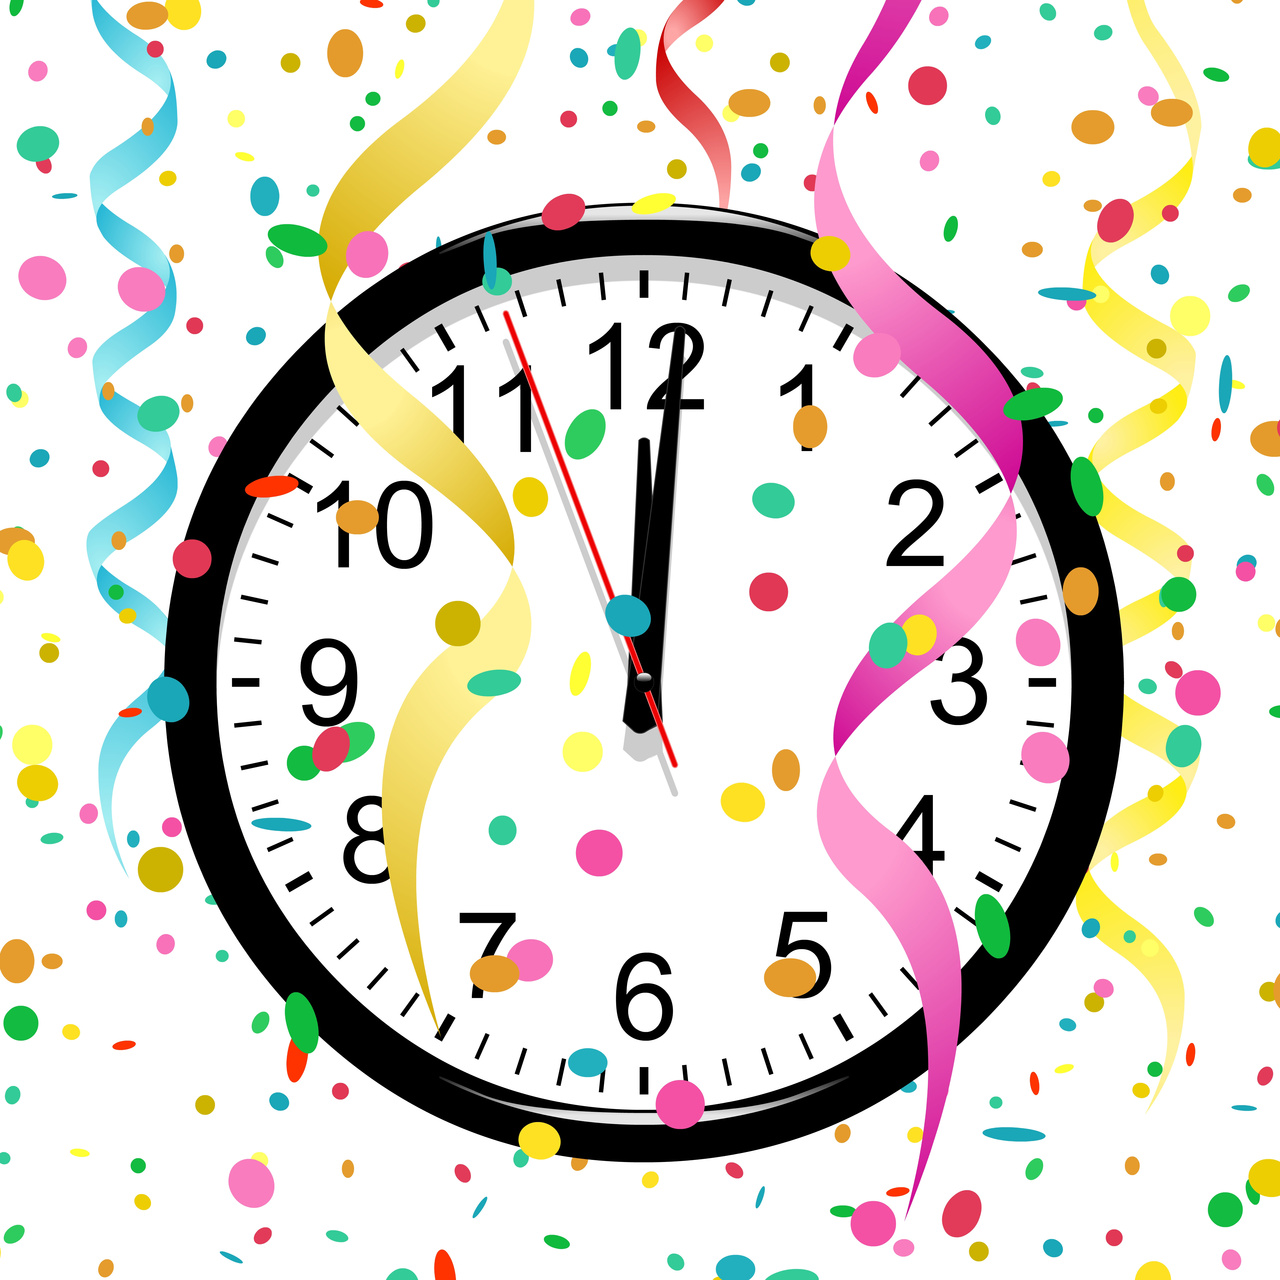 Free pictures of years. Clock clipart new year's eve